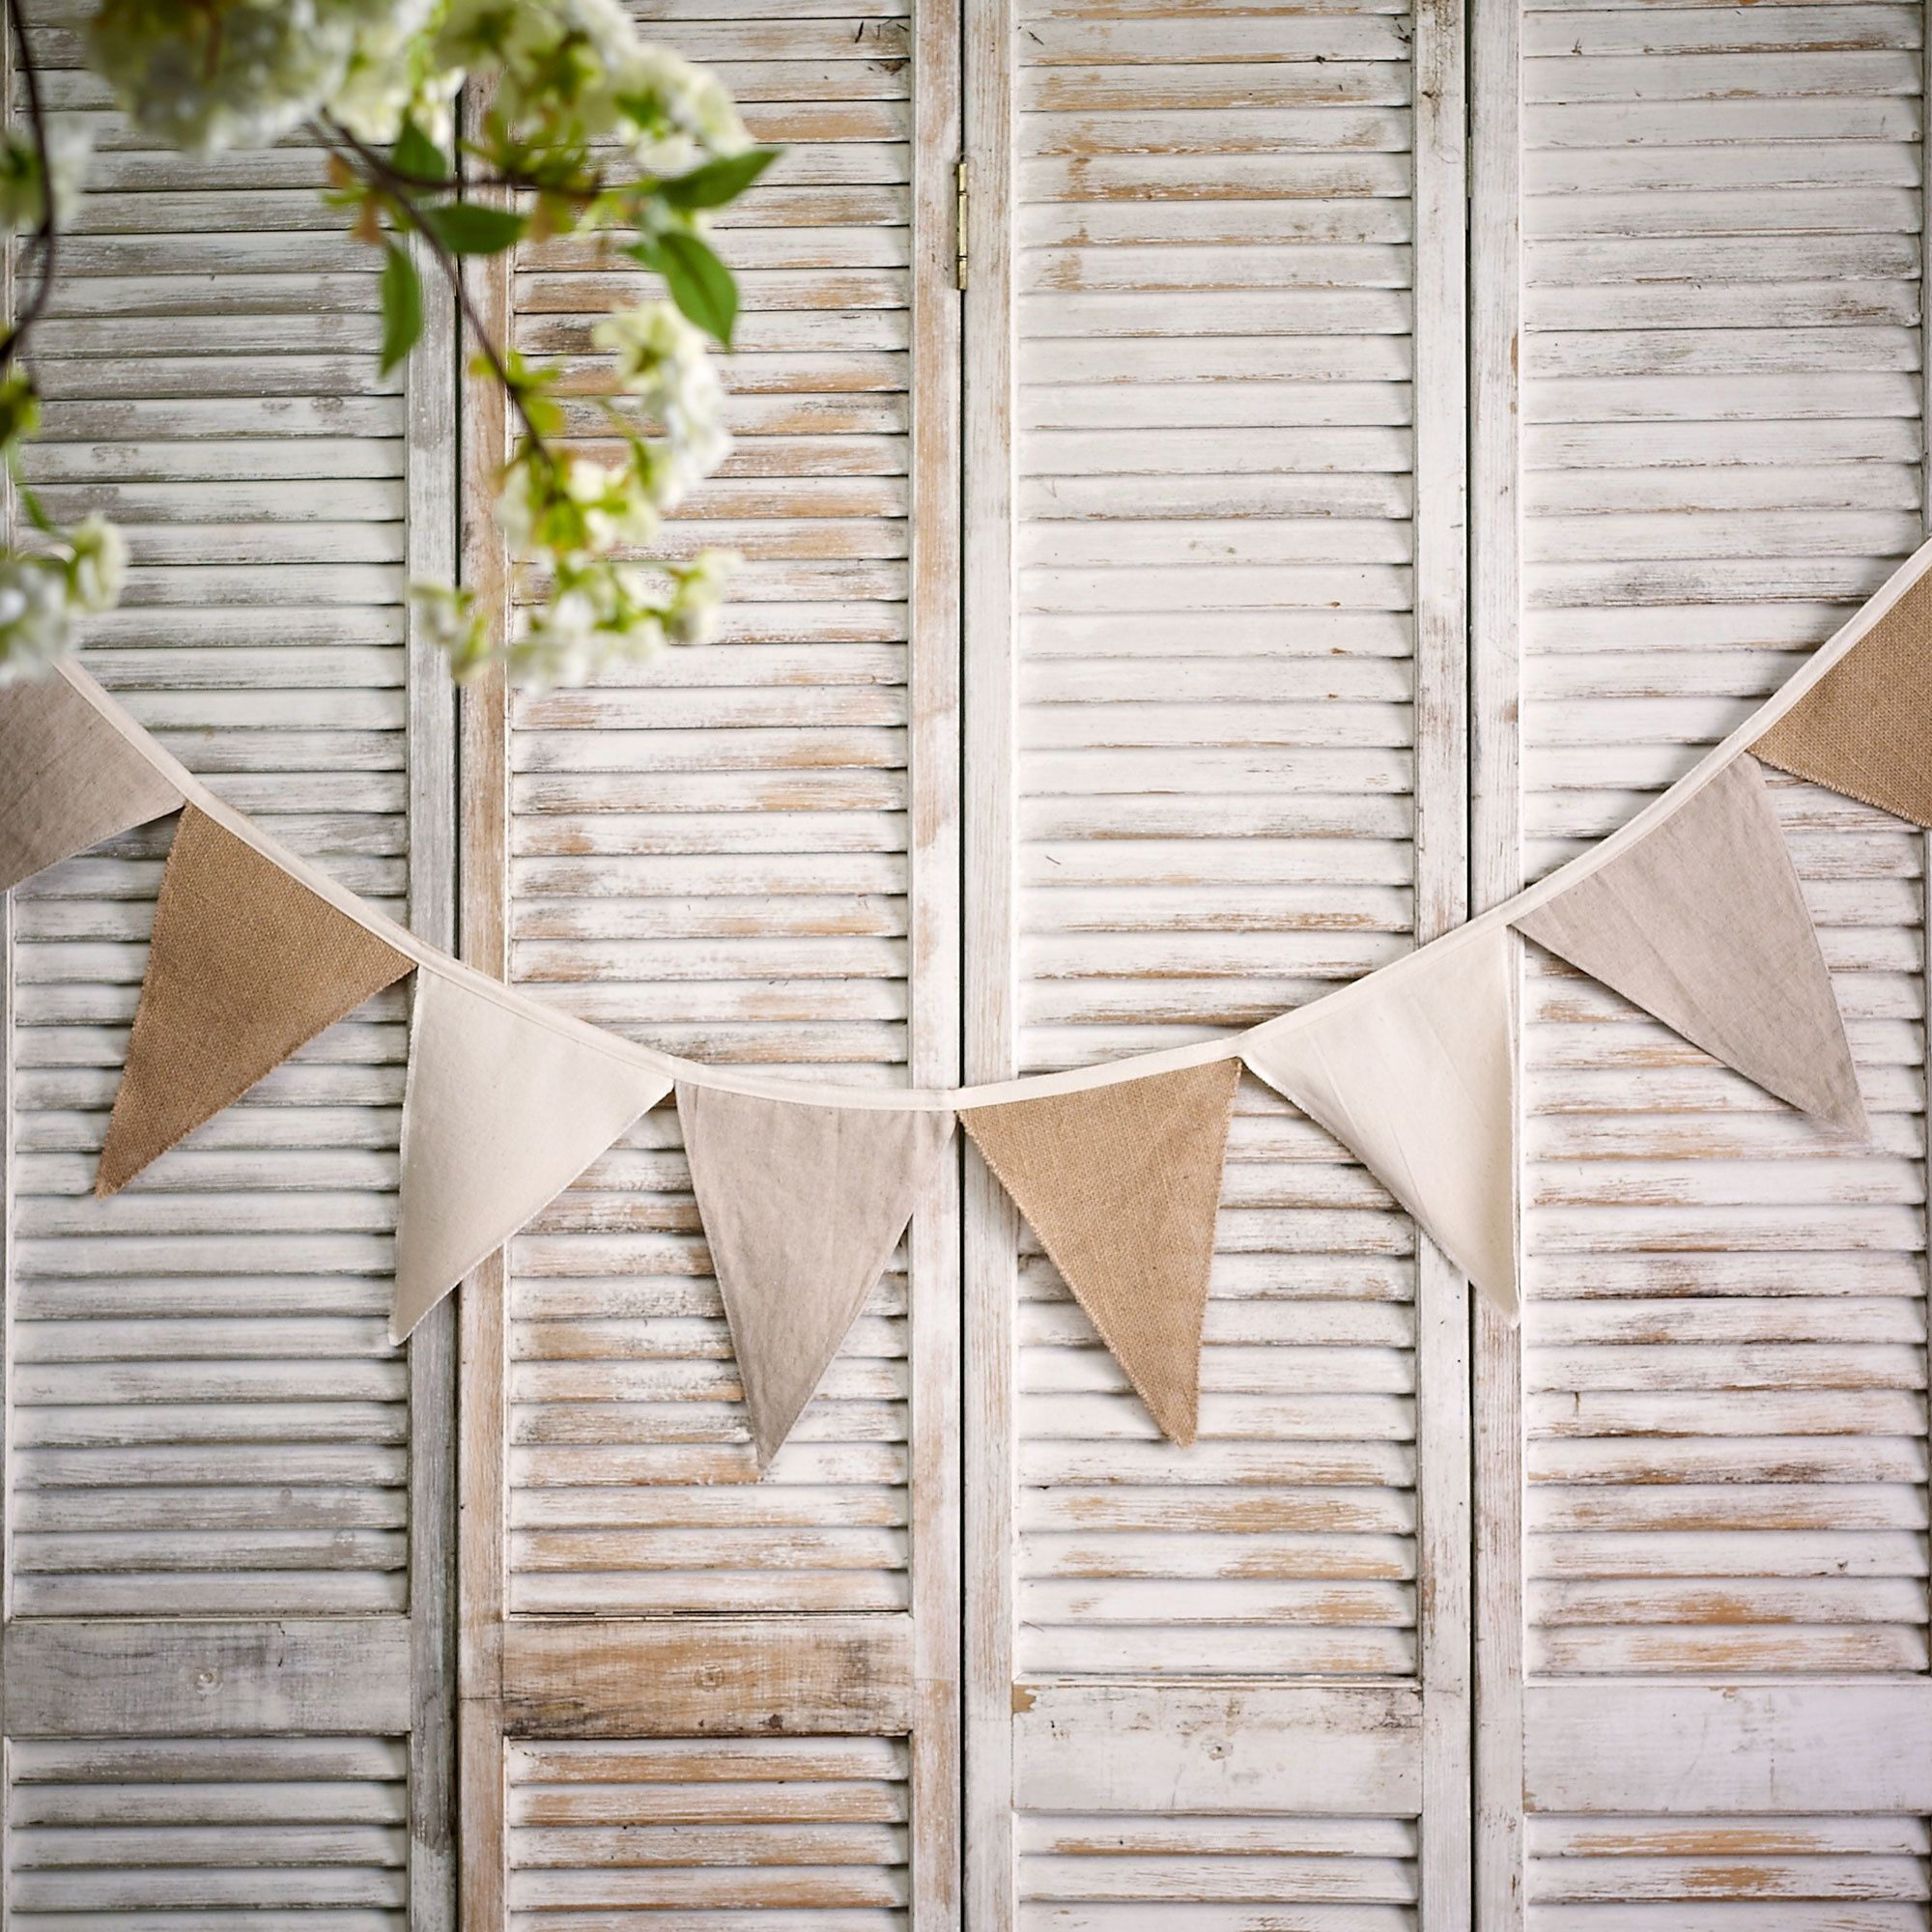 Diy Burlap Wedding Ideas: DIY Burlap Bunting Kit